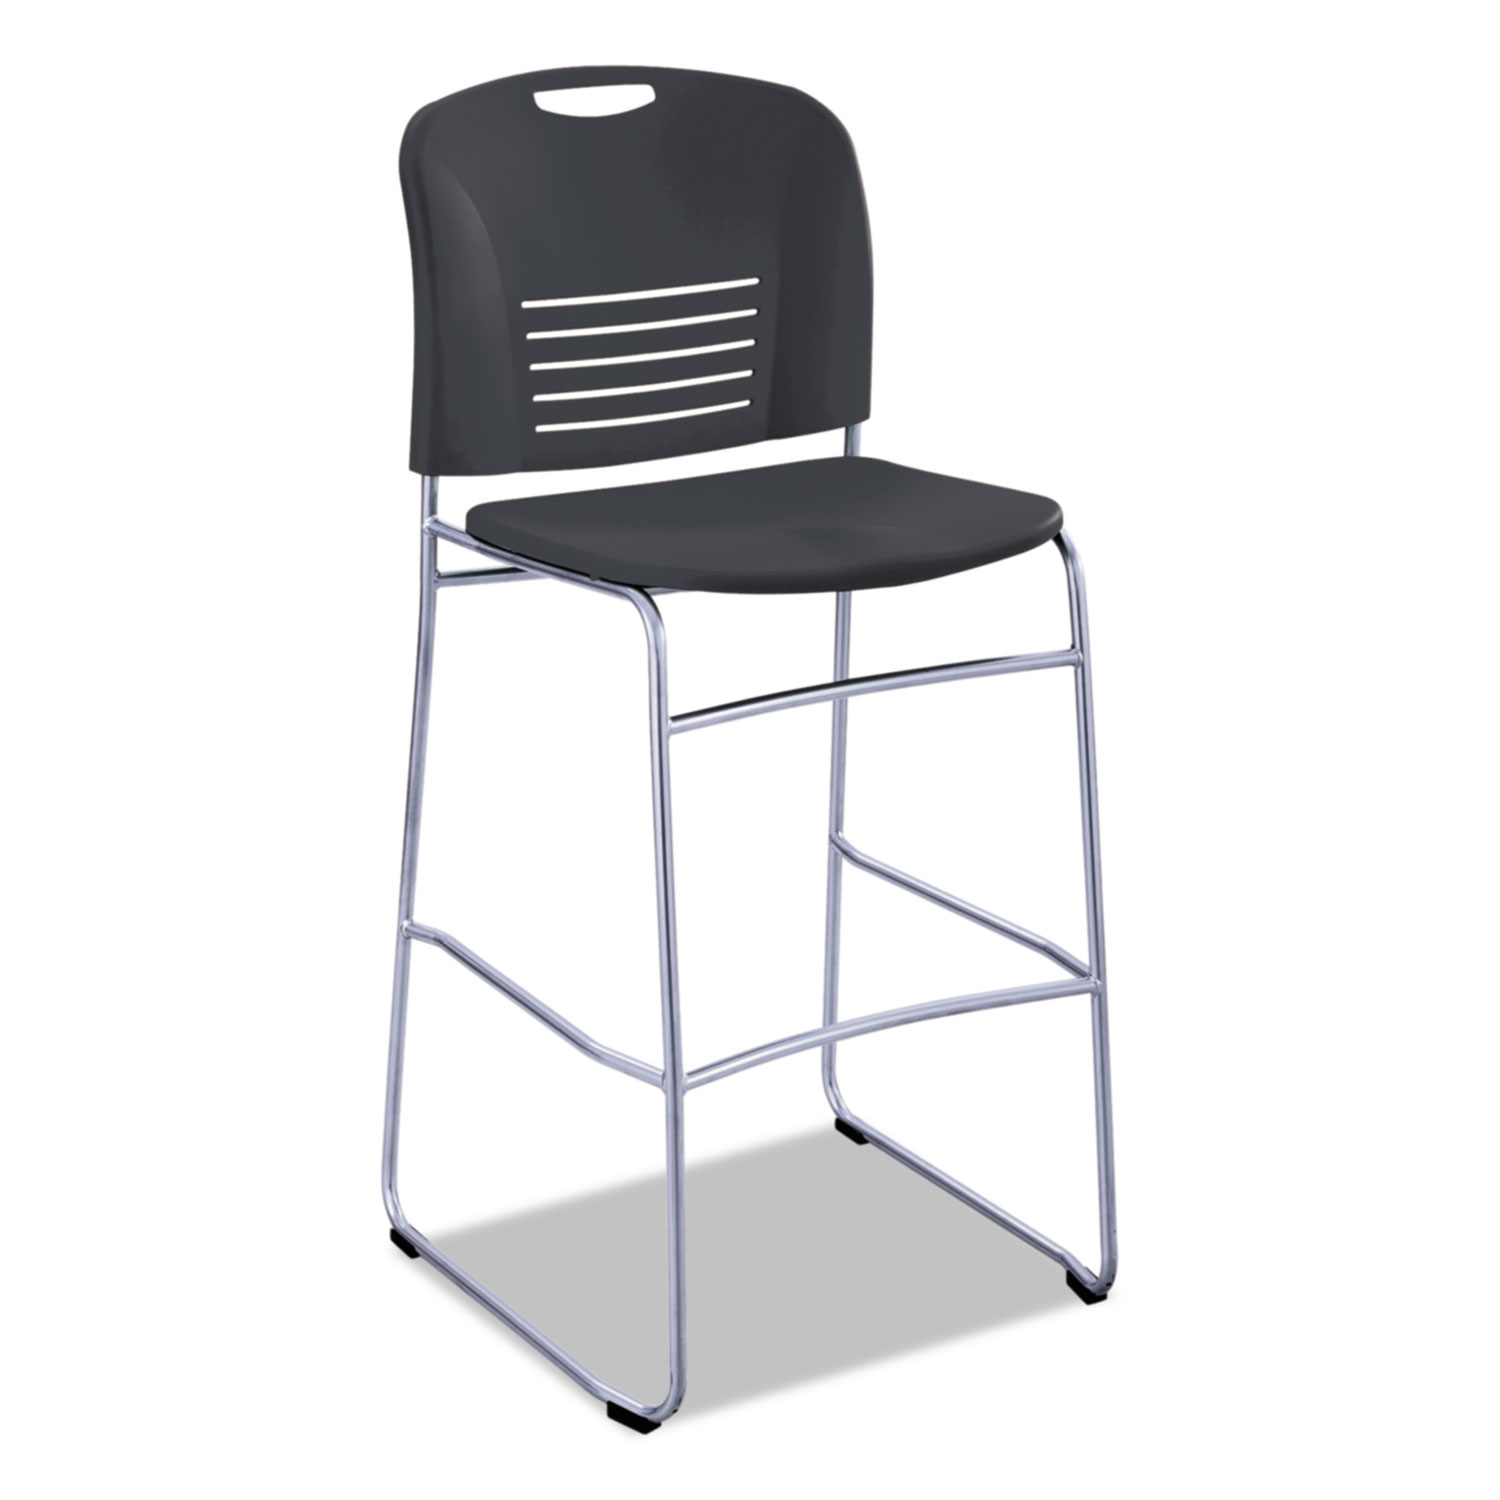 Fine Vy Sled Base Bistro Chair Black Seat Black Back Silver Machost Co Dining Chair Design Ideas Machostcouk